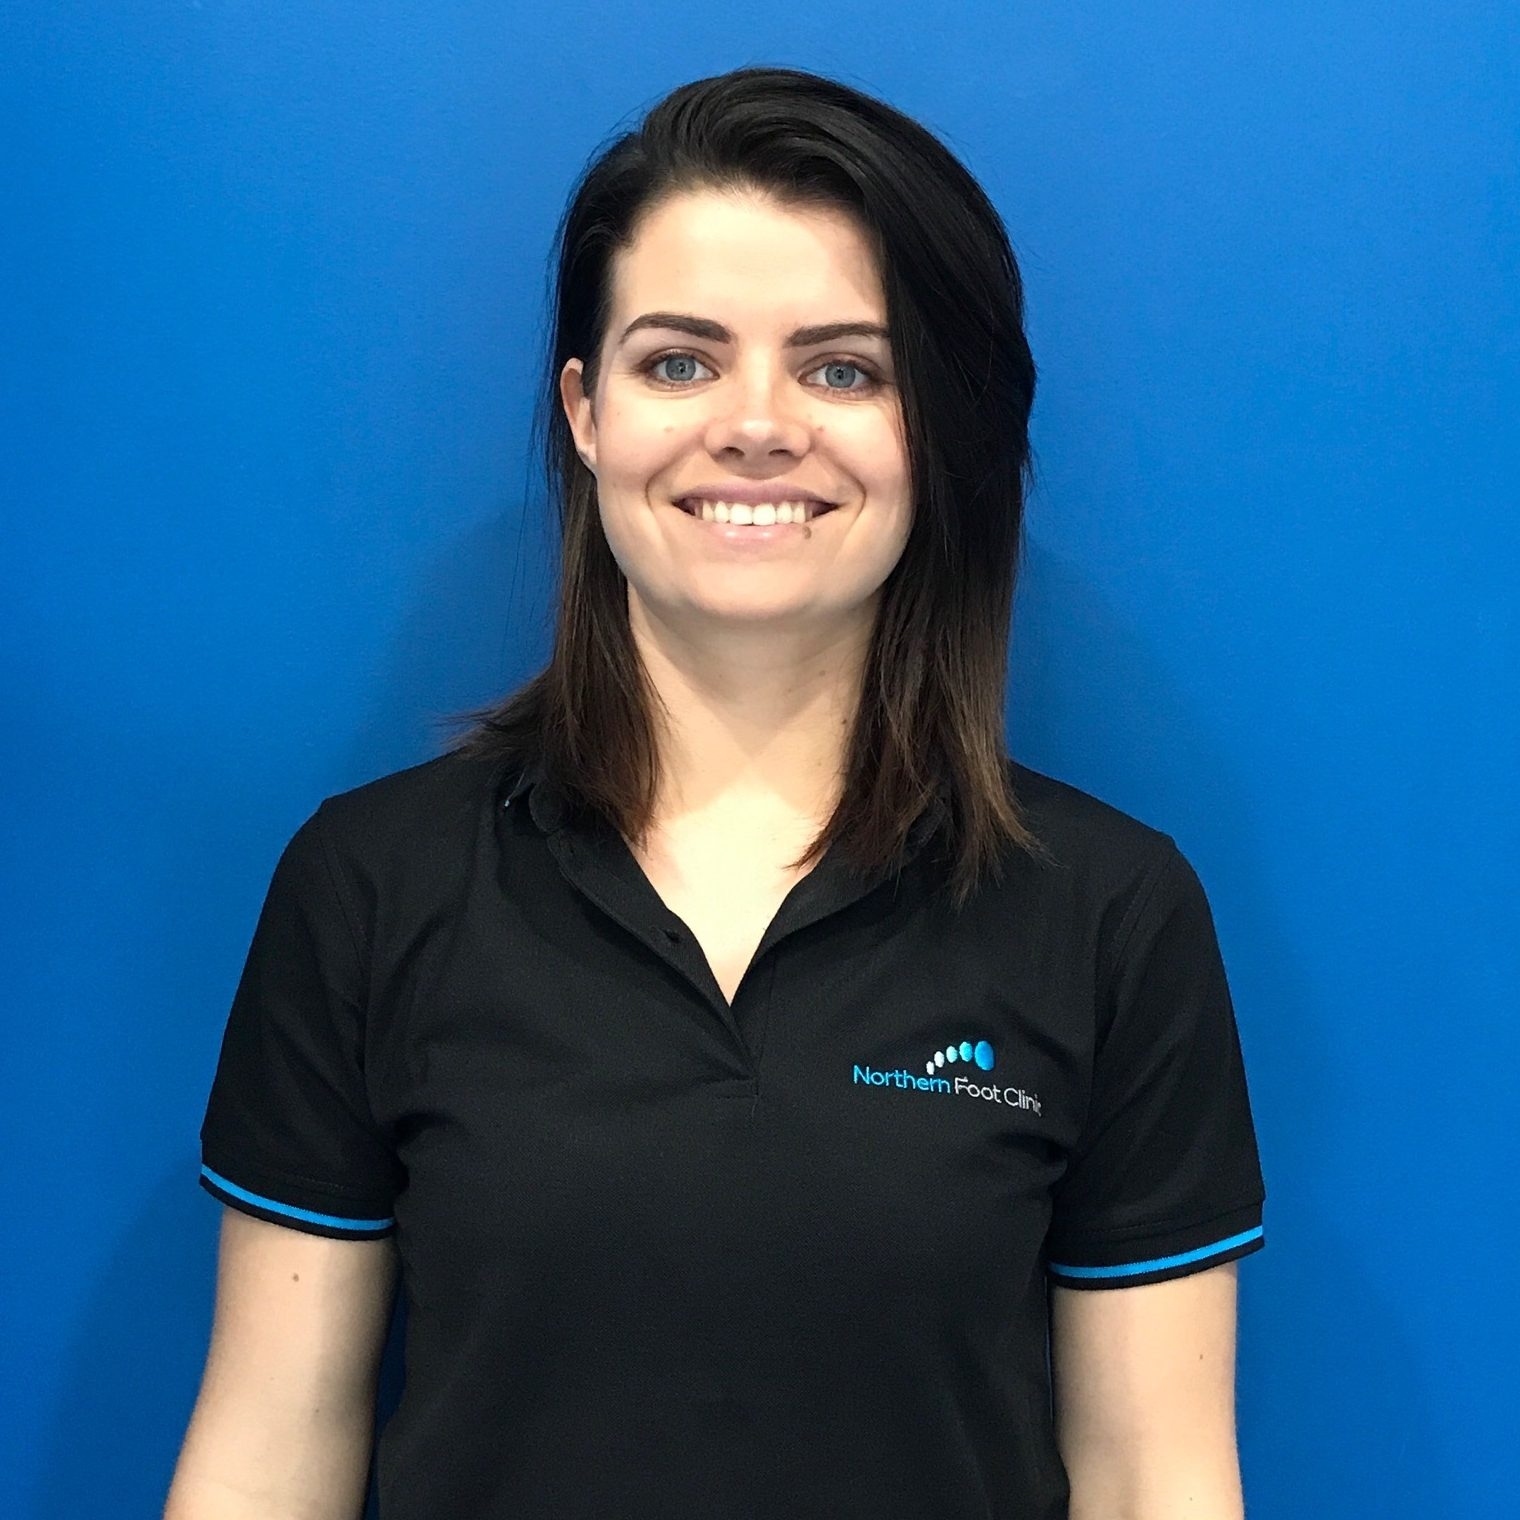 Podiatrist at Northern Foot Clinic in South Morang